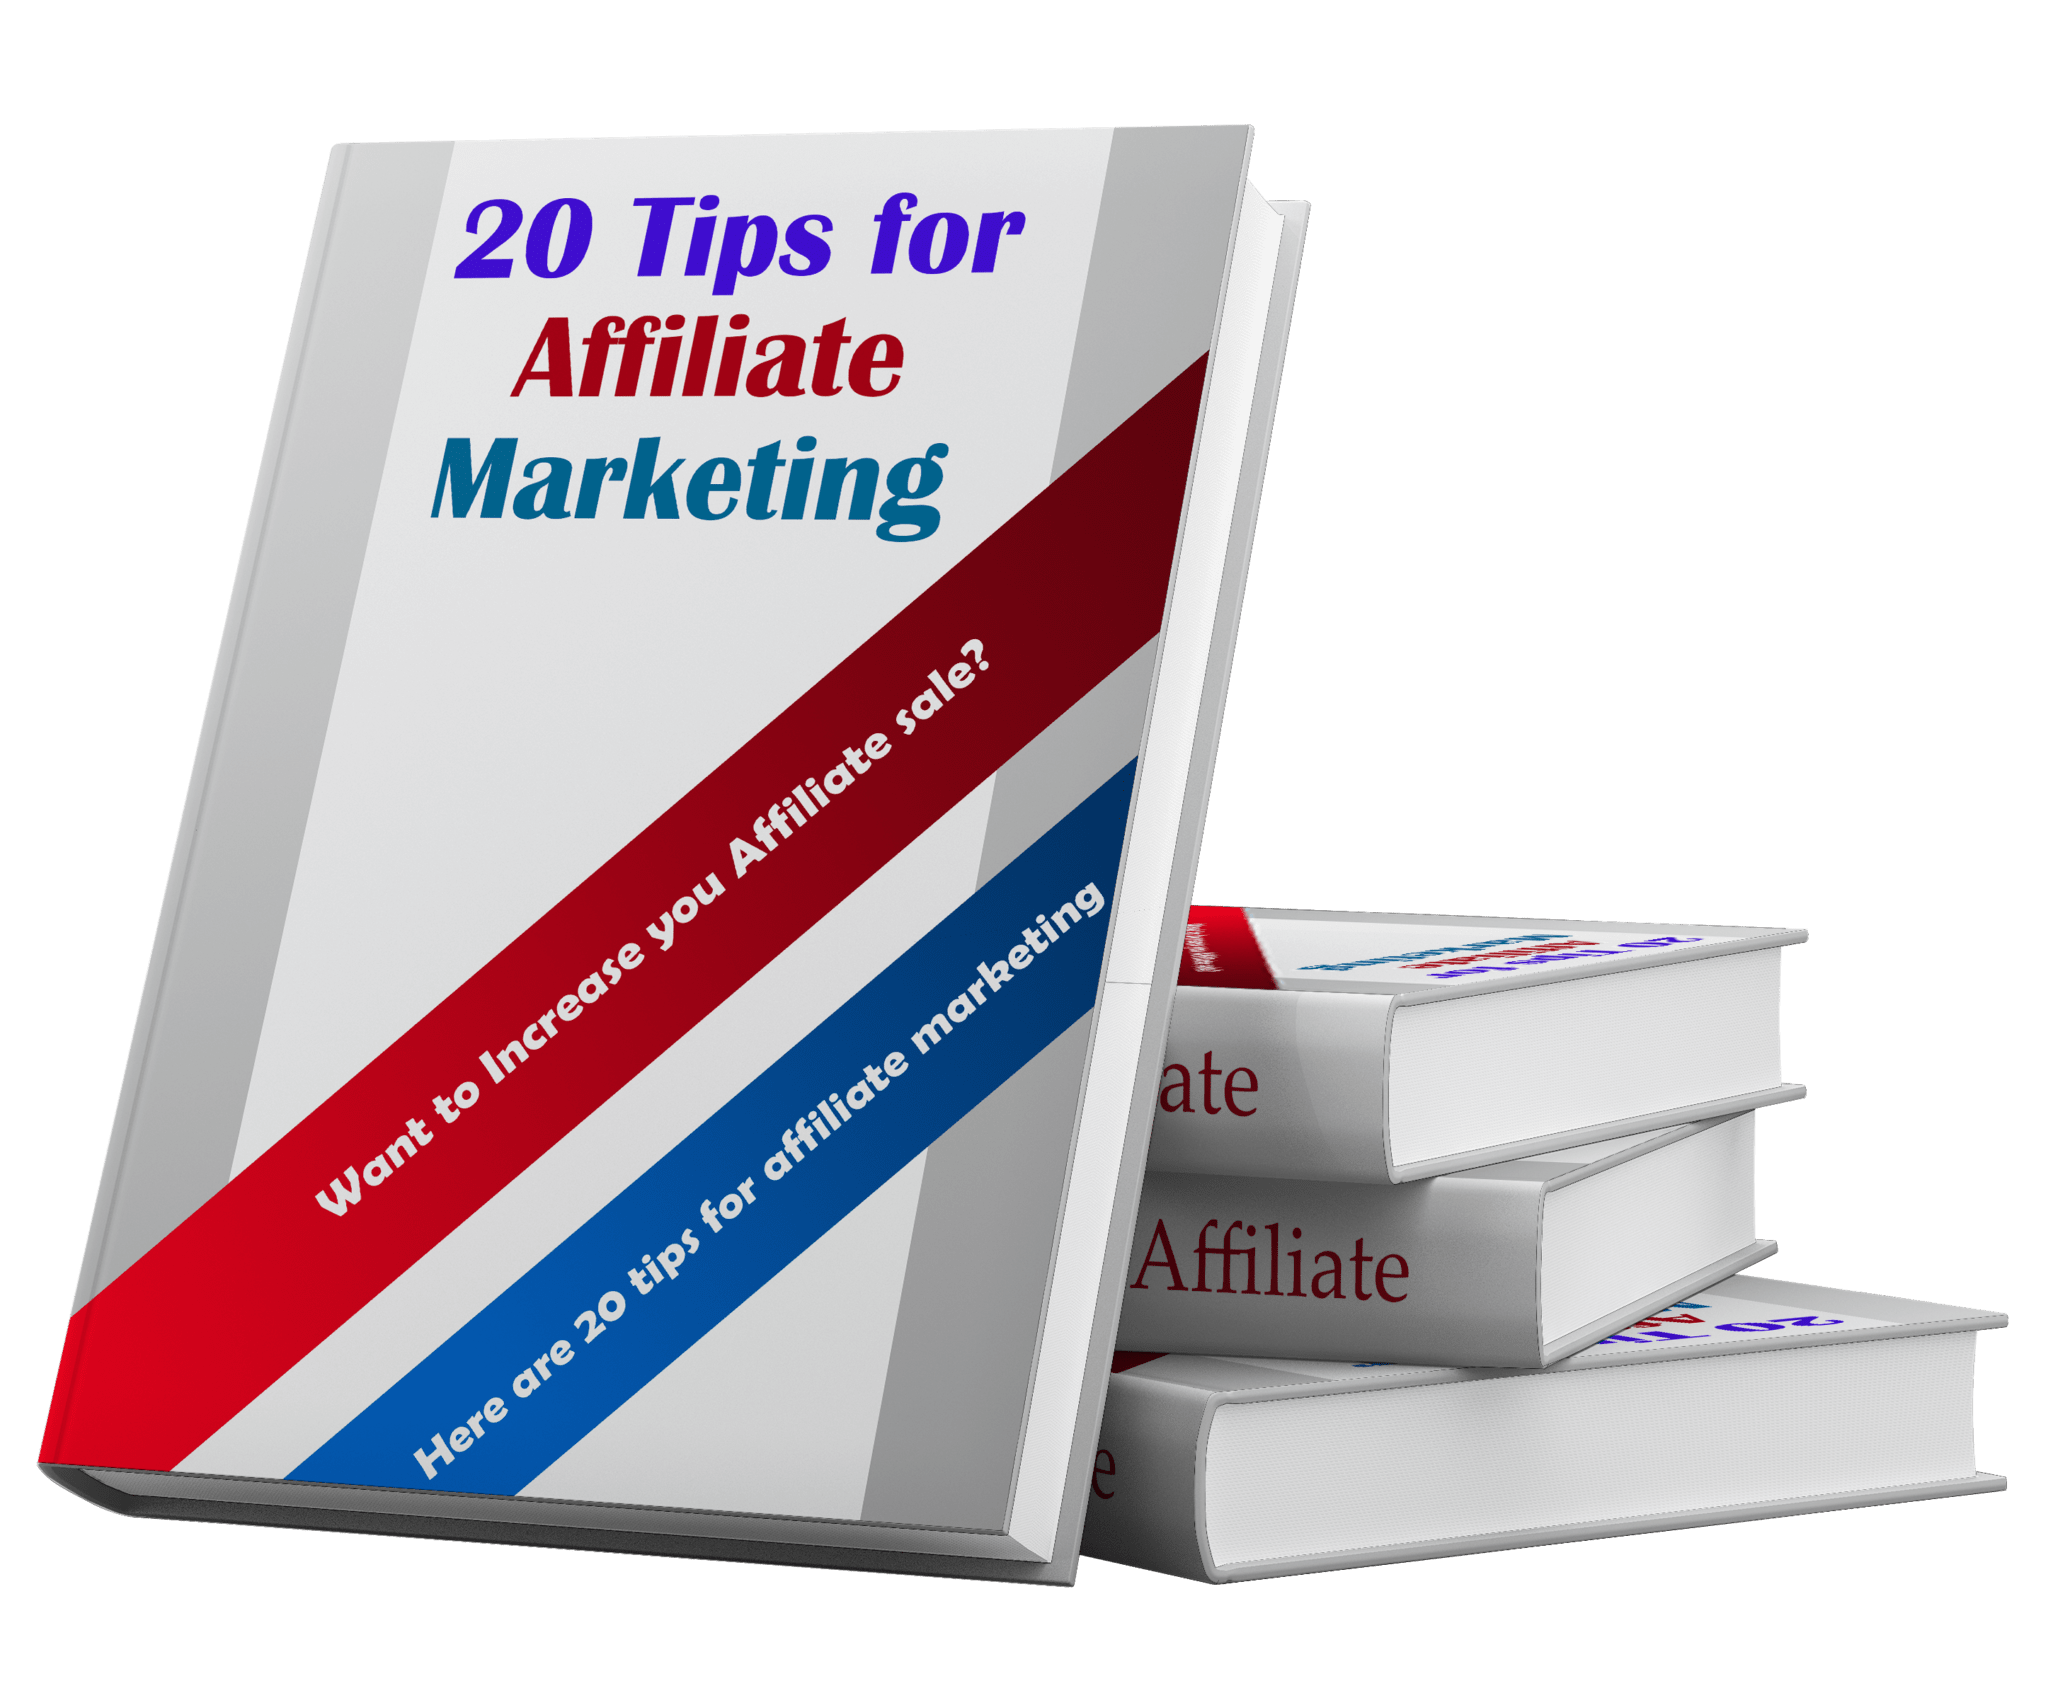 20 Tips for Affiliate Marketing